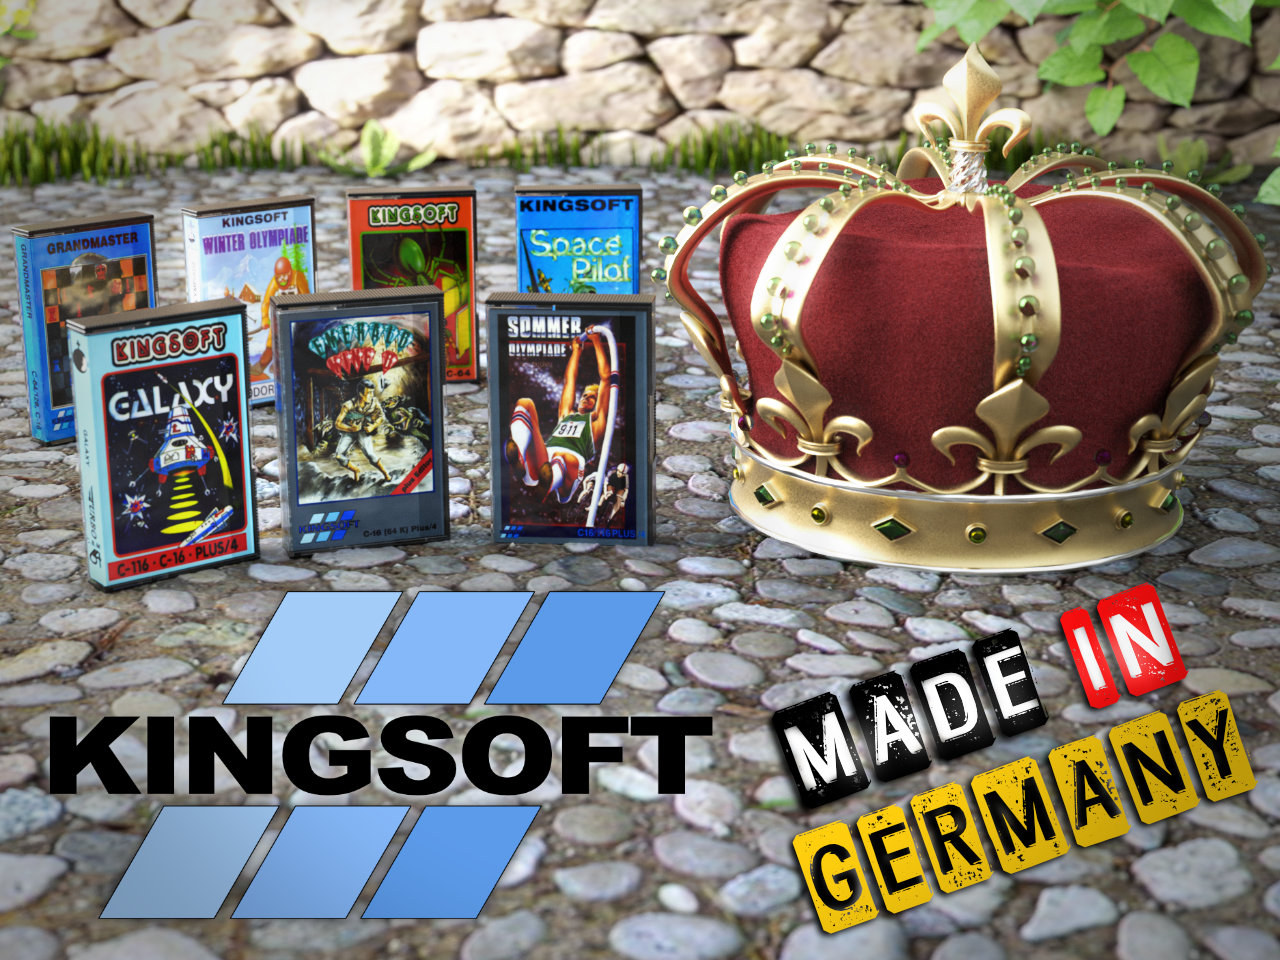 Kingsoft - Made in Germany. (Bild: René Achter)